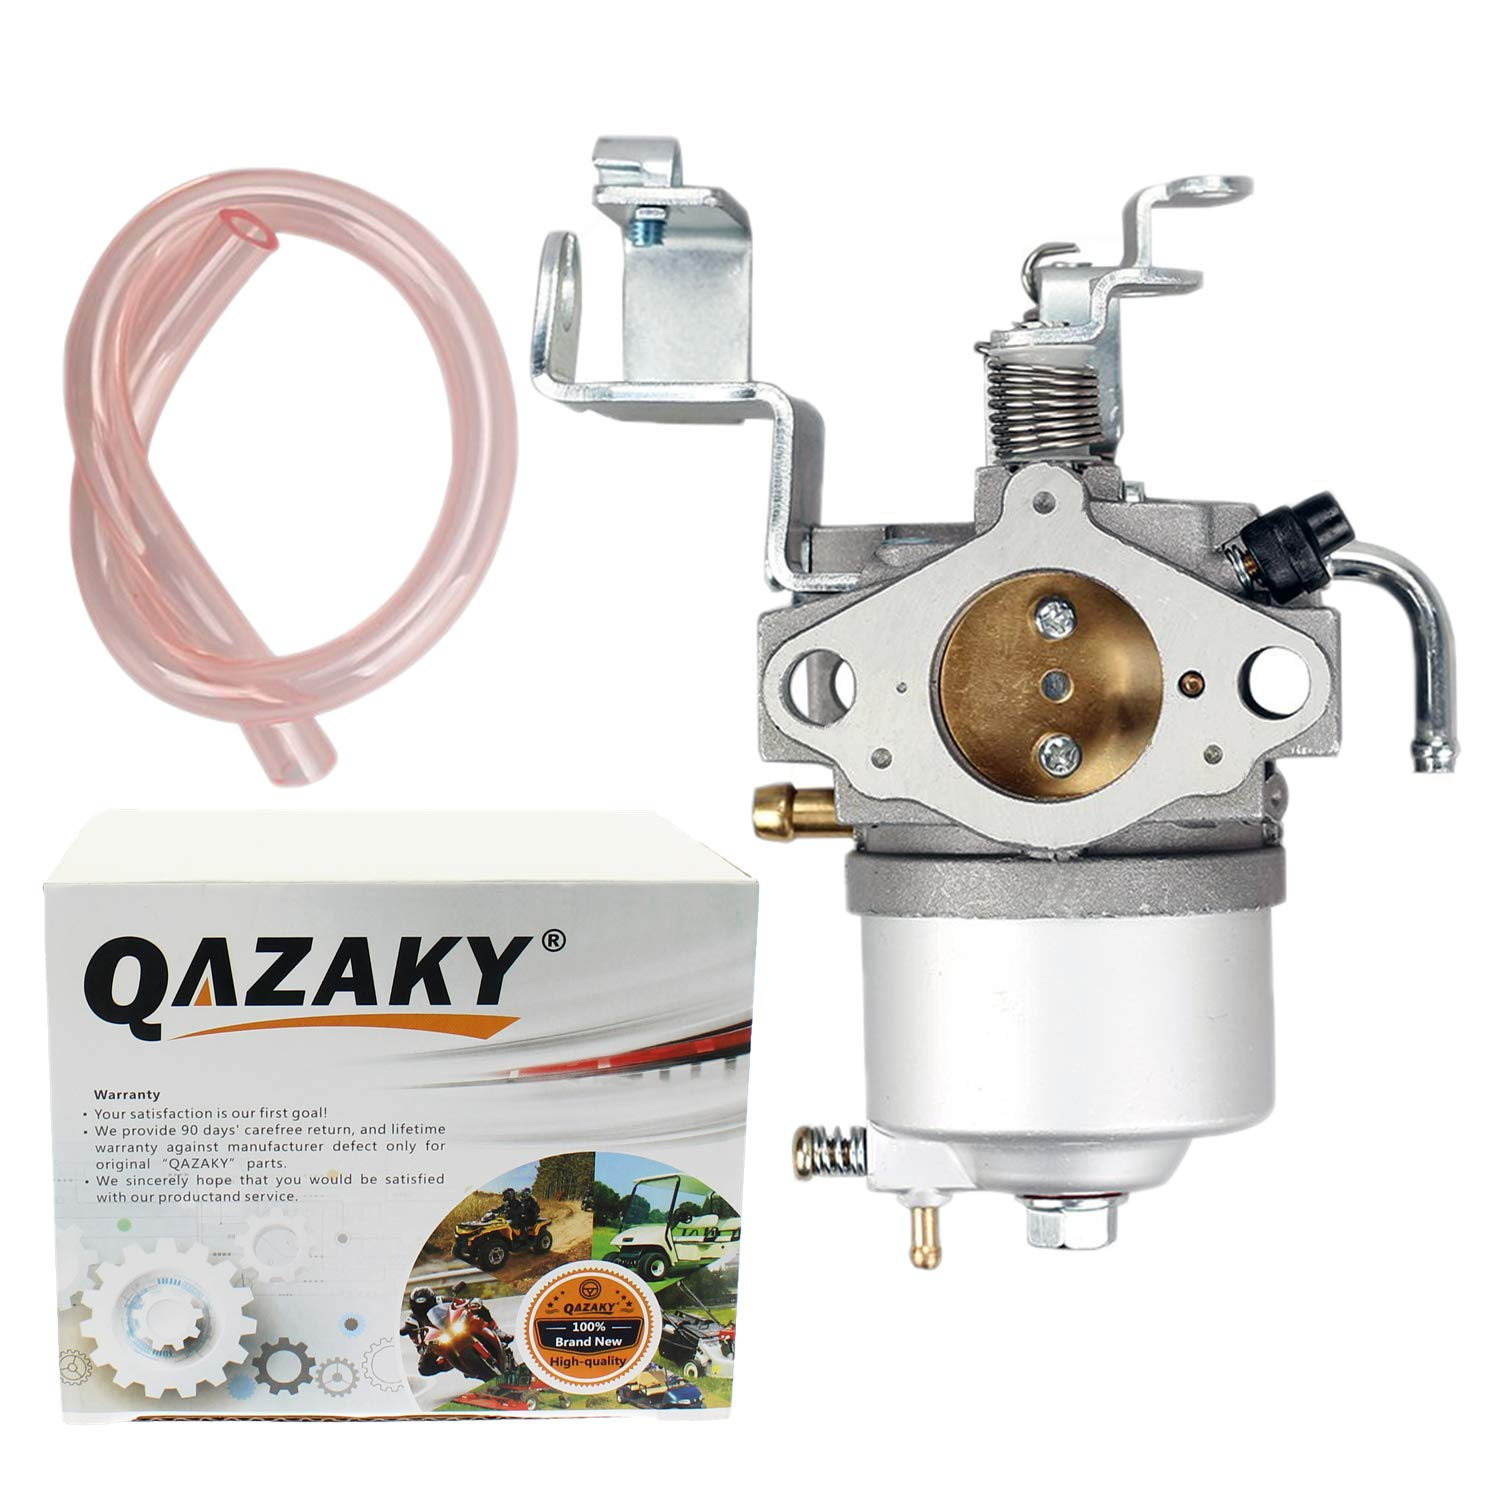 QAZAKY Carburetor Replacement for Yamaha Golf Cart Gas Car G22 - G27 G29  4-Cycle Drive Engine 2003-UP Carb JR6-14101-00 JR6-14101-01